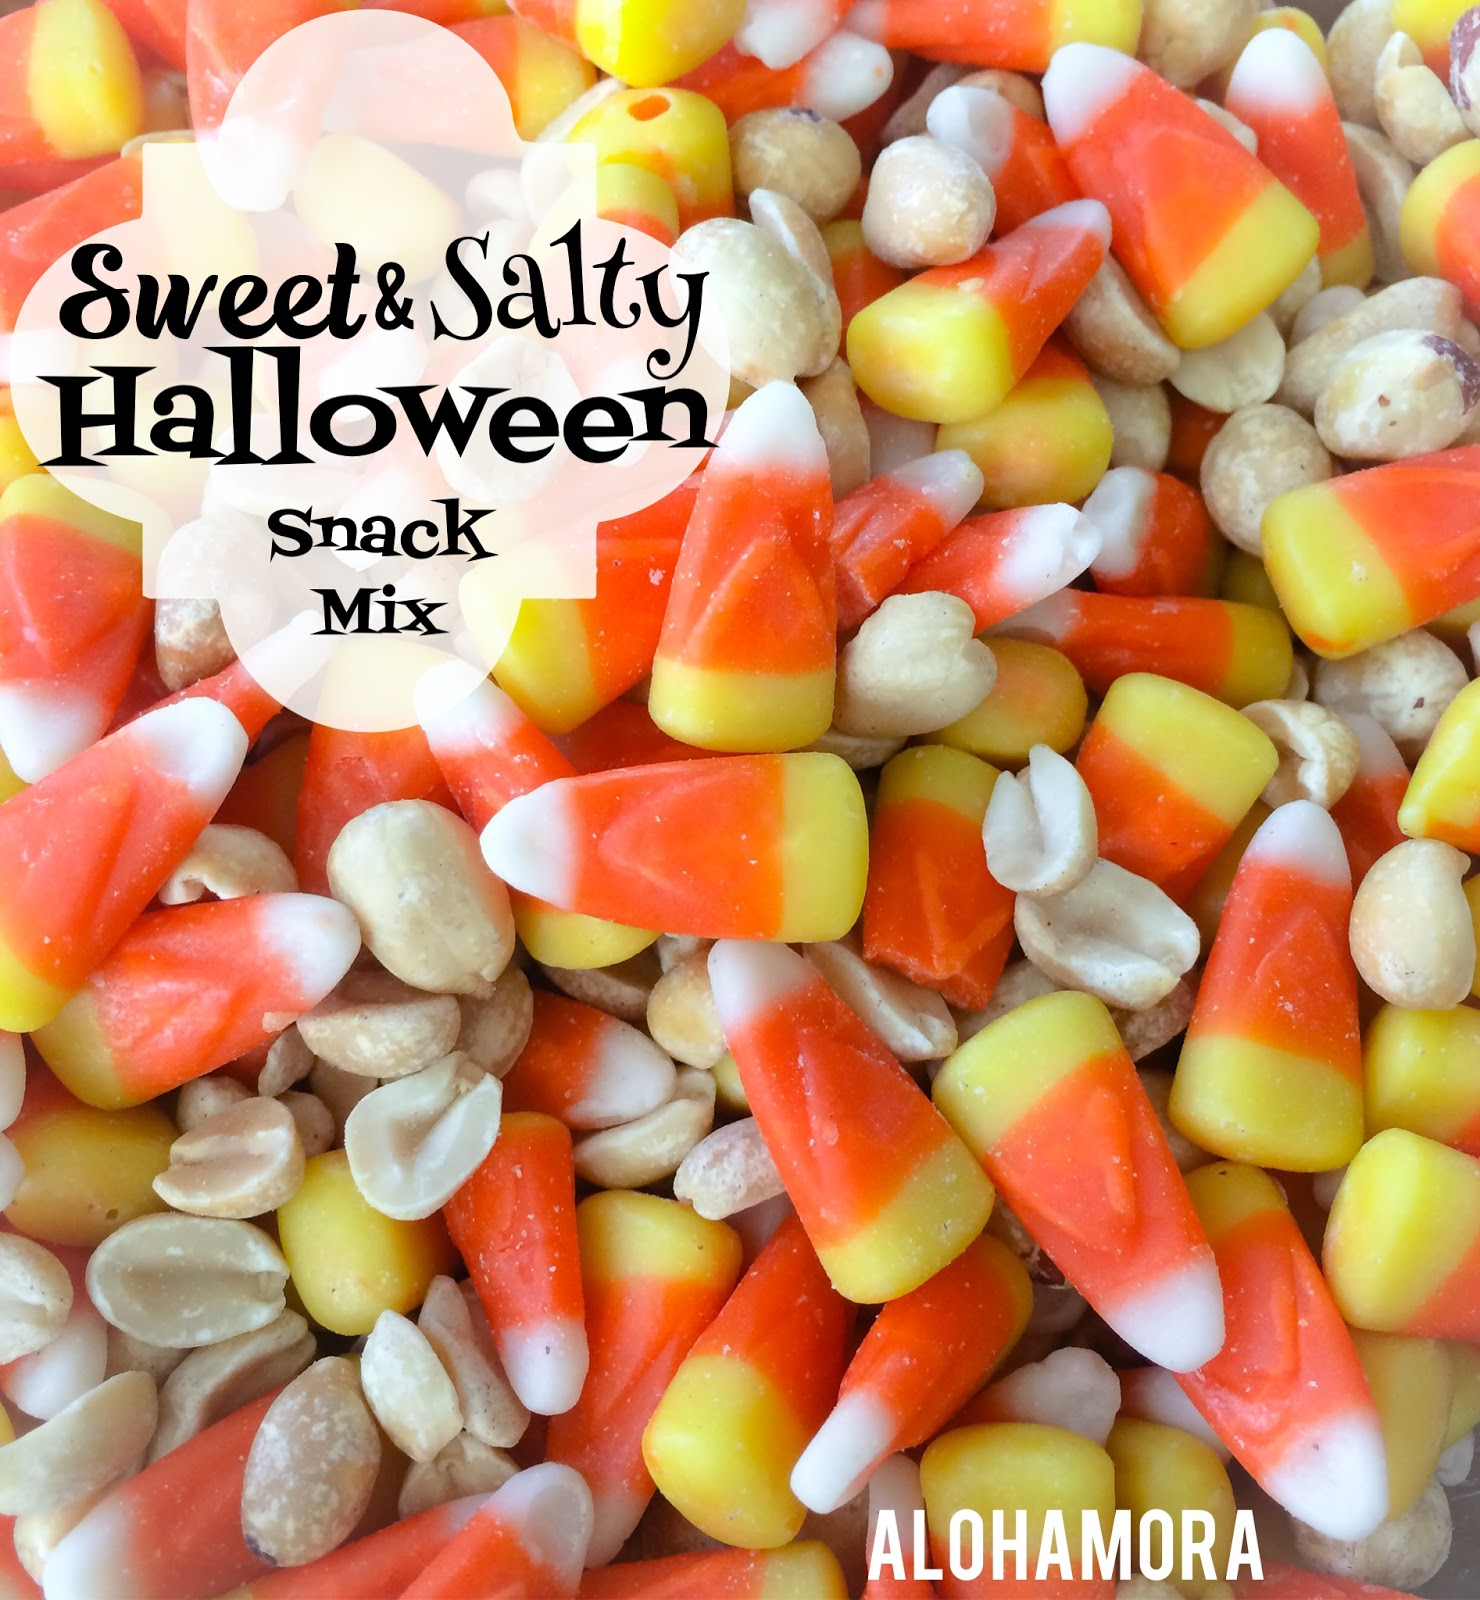 Use Candy Corn and Peanuts to make this super fast and super easy Sweet and Salty Halloween Snack Mix.  Enjoy it for a party, munch on it while playing games or passing out treats.  Alohamora Open a Book http://alohamoraopenabook.blogspot.com/